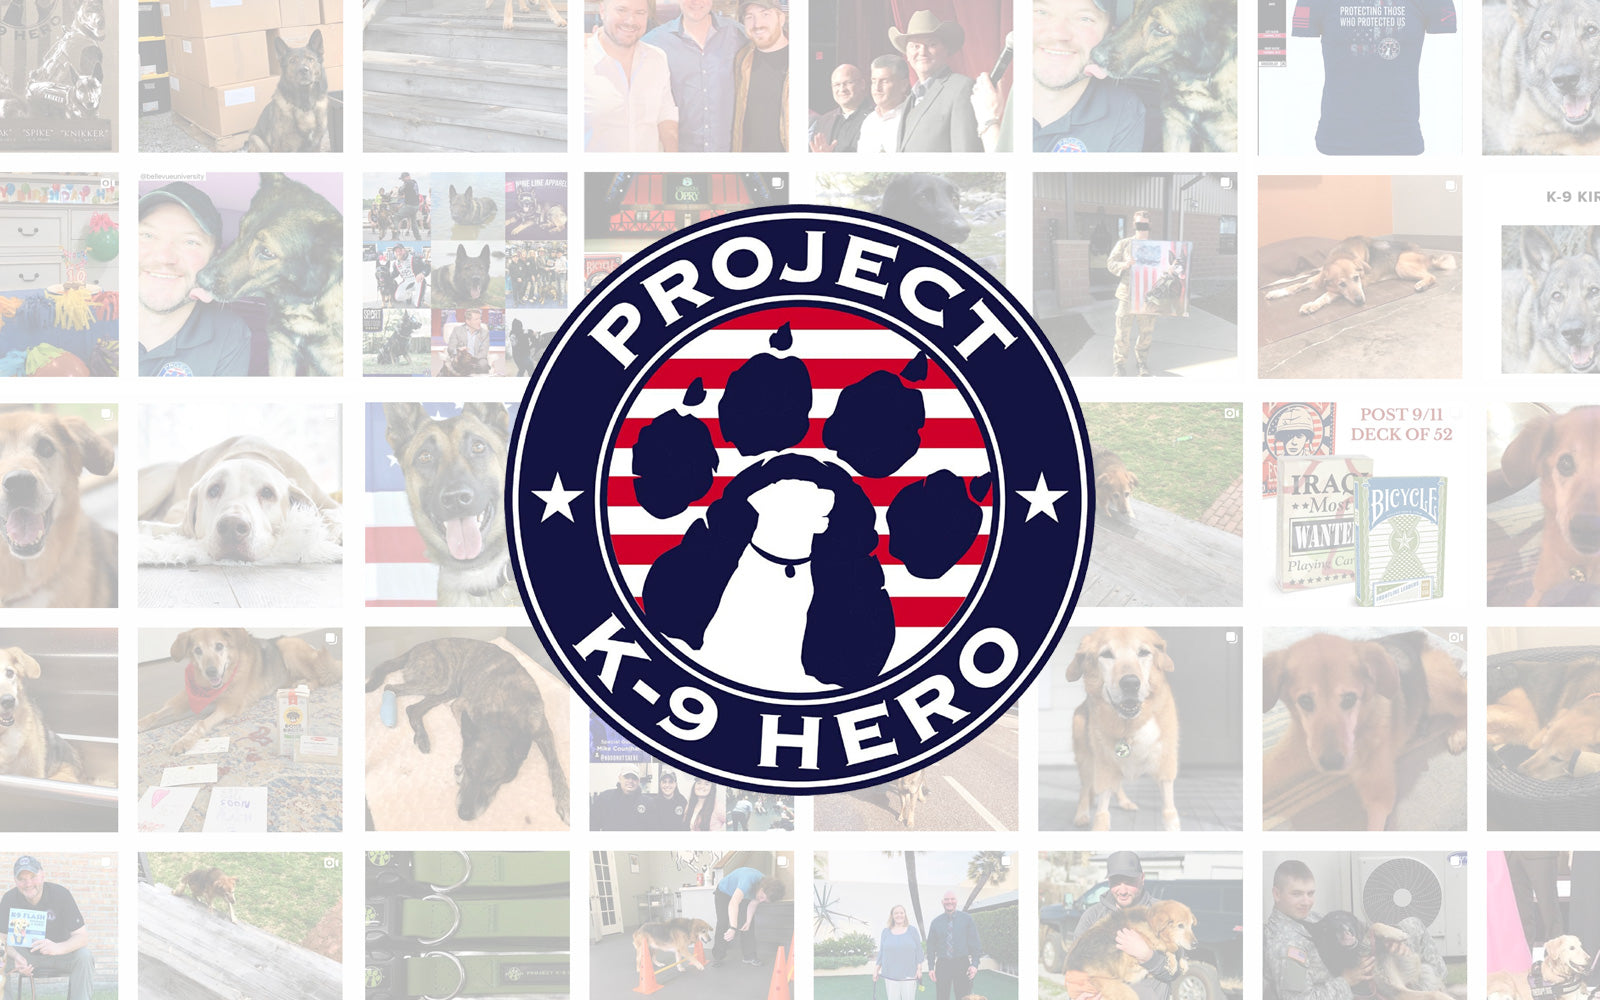 Project K-9 Hero Partners with Brutus Broth